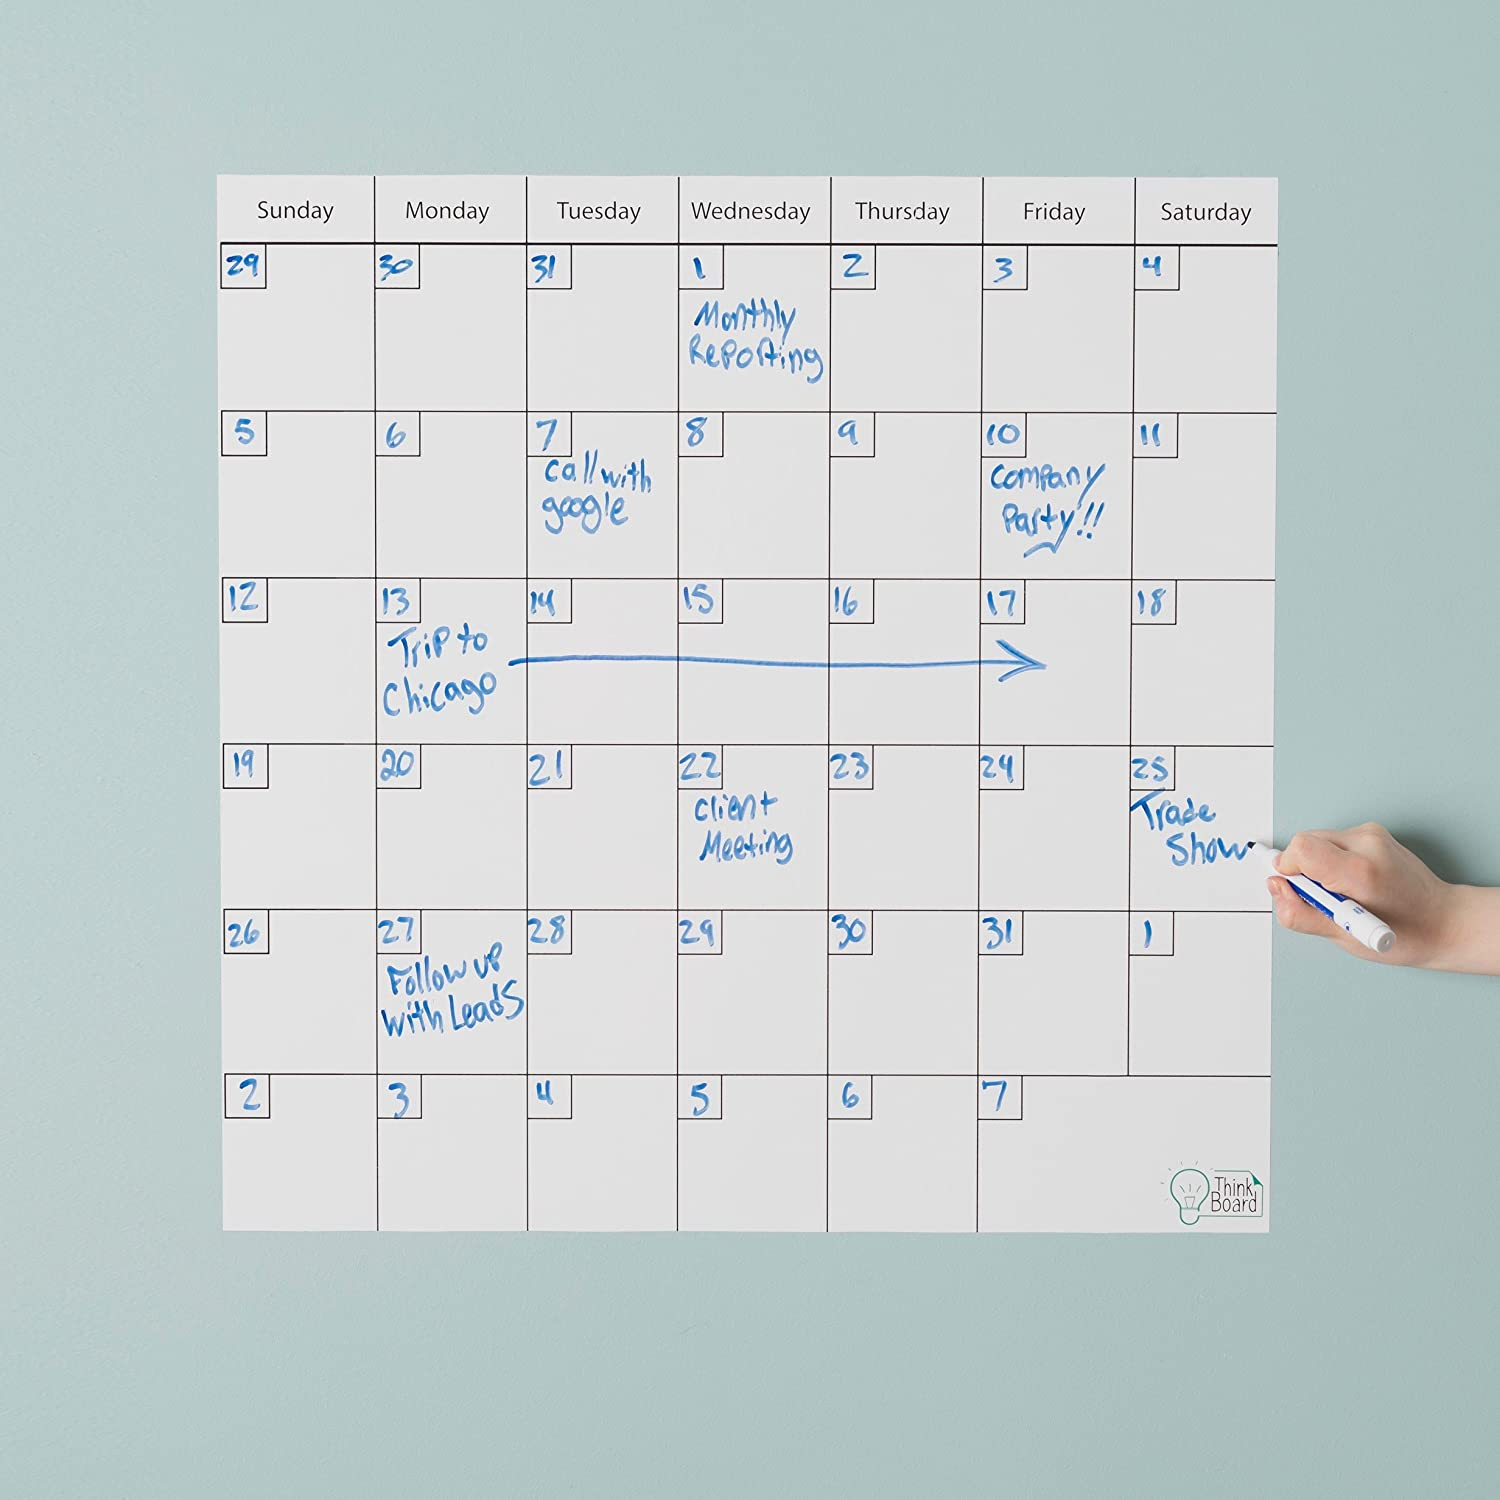 Think Board Self-Adhesive Whiteboard Wall and Refrigerator Calendar, Peel and Stick Dry Erase Board Wall Cling for Home and Office, Removable Wall Decals (Premium White, 24x24) 24x24)